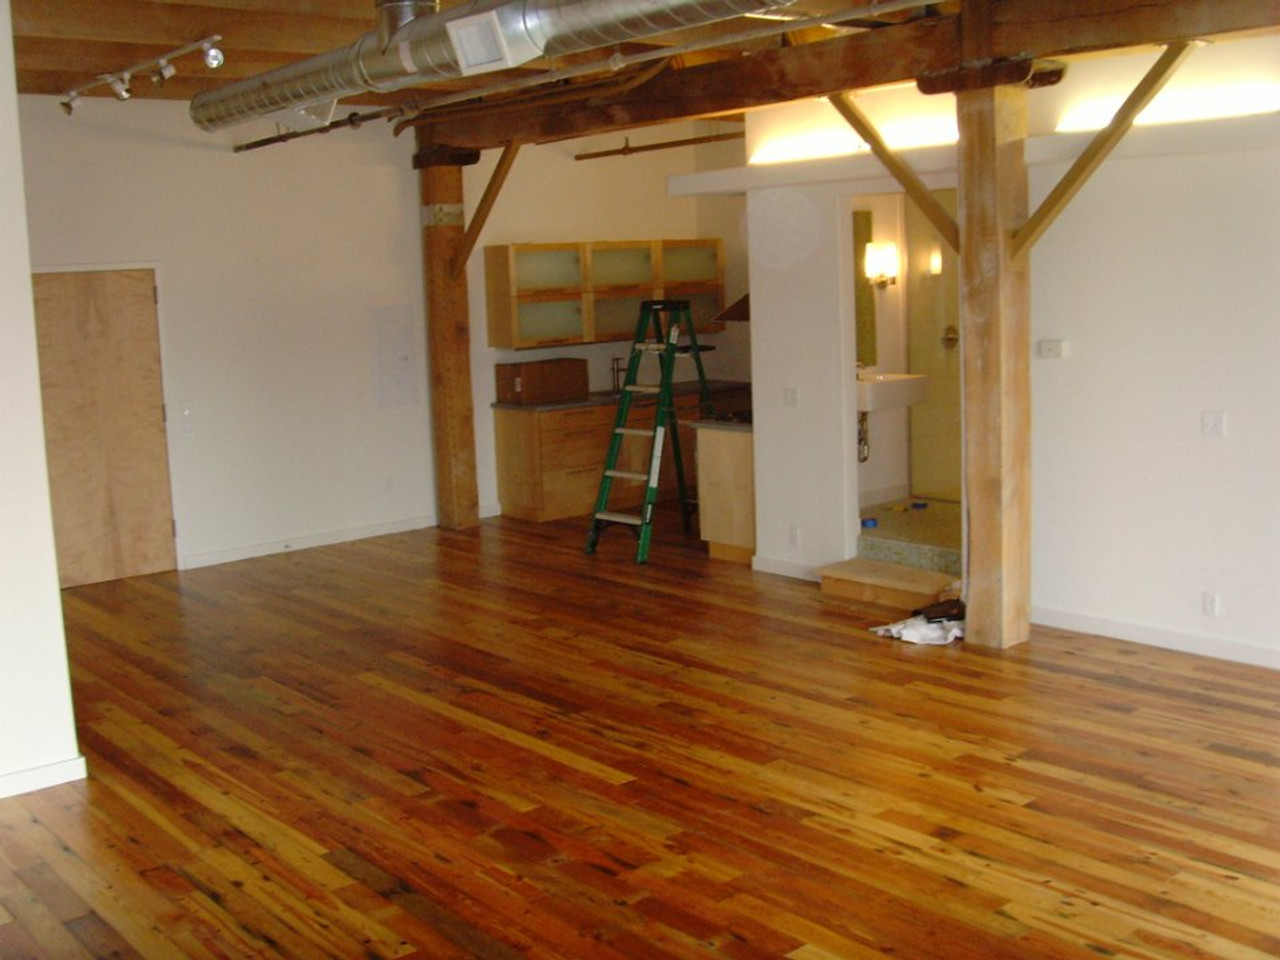 SealGreen E10 Epoxy Sealer is used as a humidity barrier for wood floors over concrete